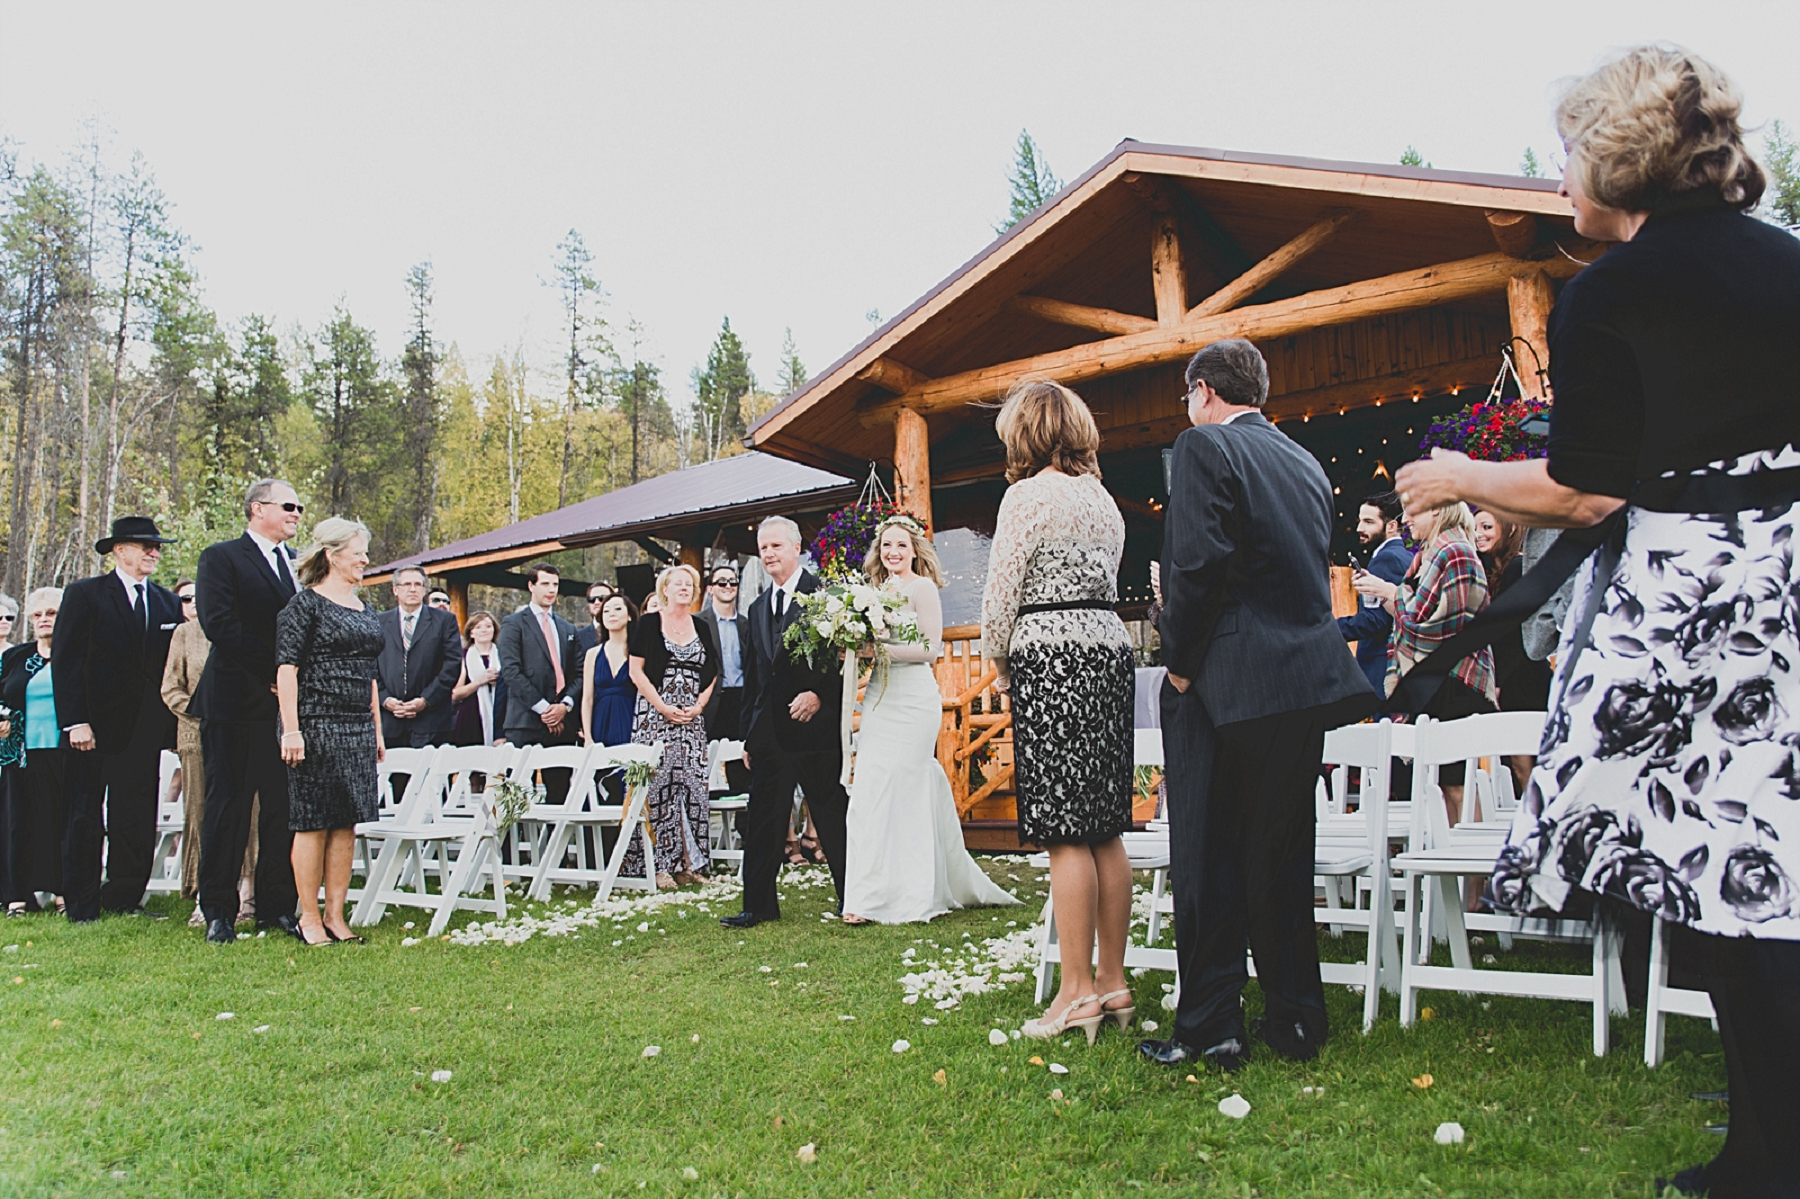 Jennifer_Mooney_Photo_glacier_park_wedding_Beargrass_florals_fall_wedding_elegant_montana_destination_velvet_bride_katie_may_dress_verona_gown_00074.jpg